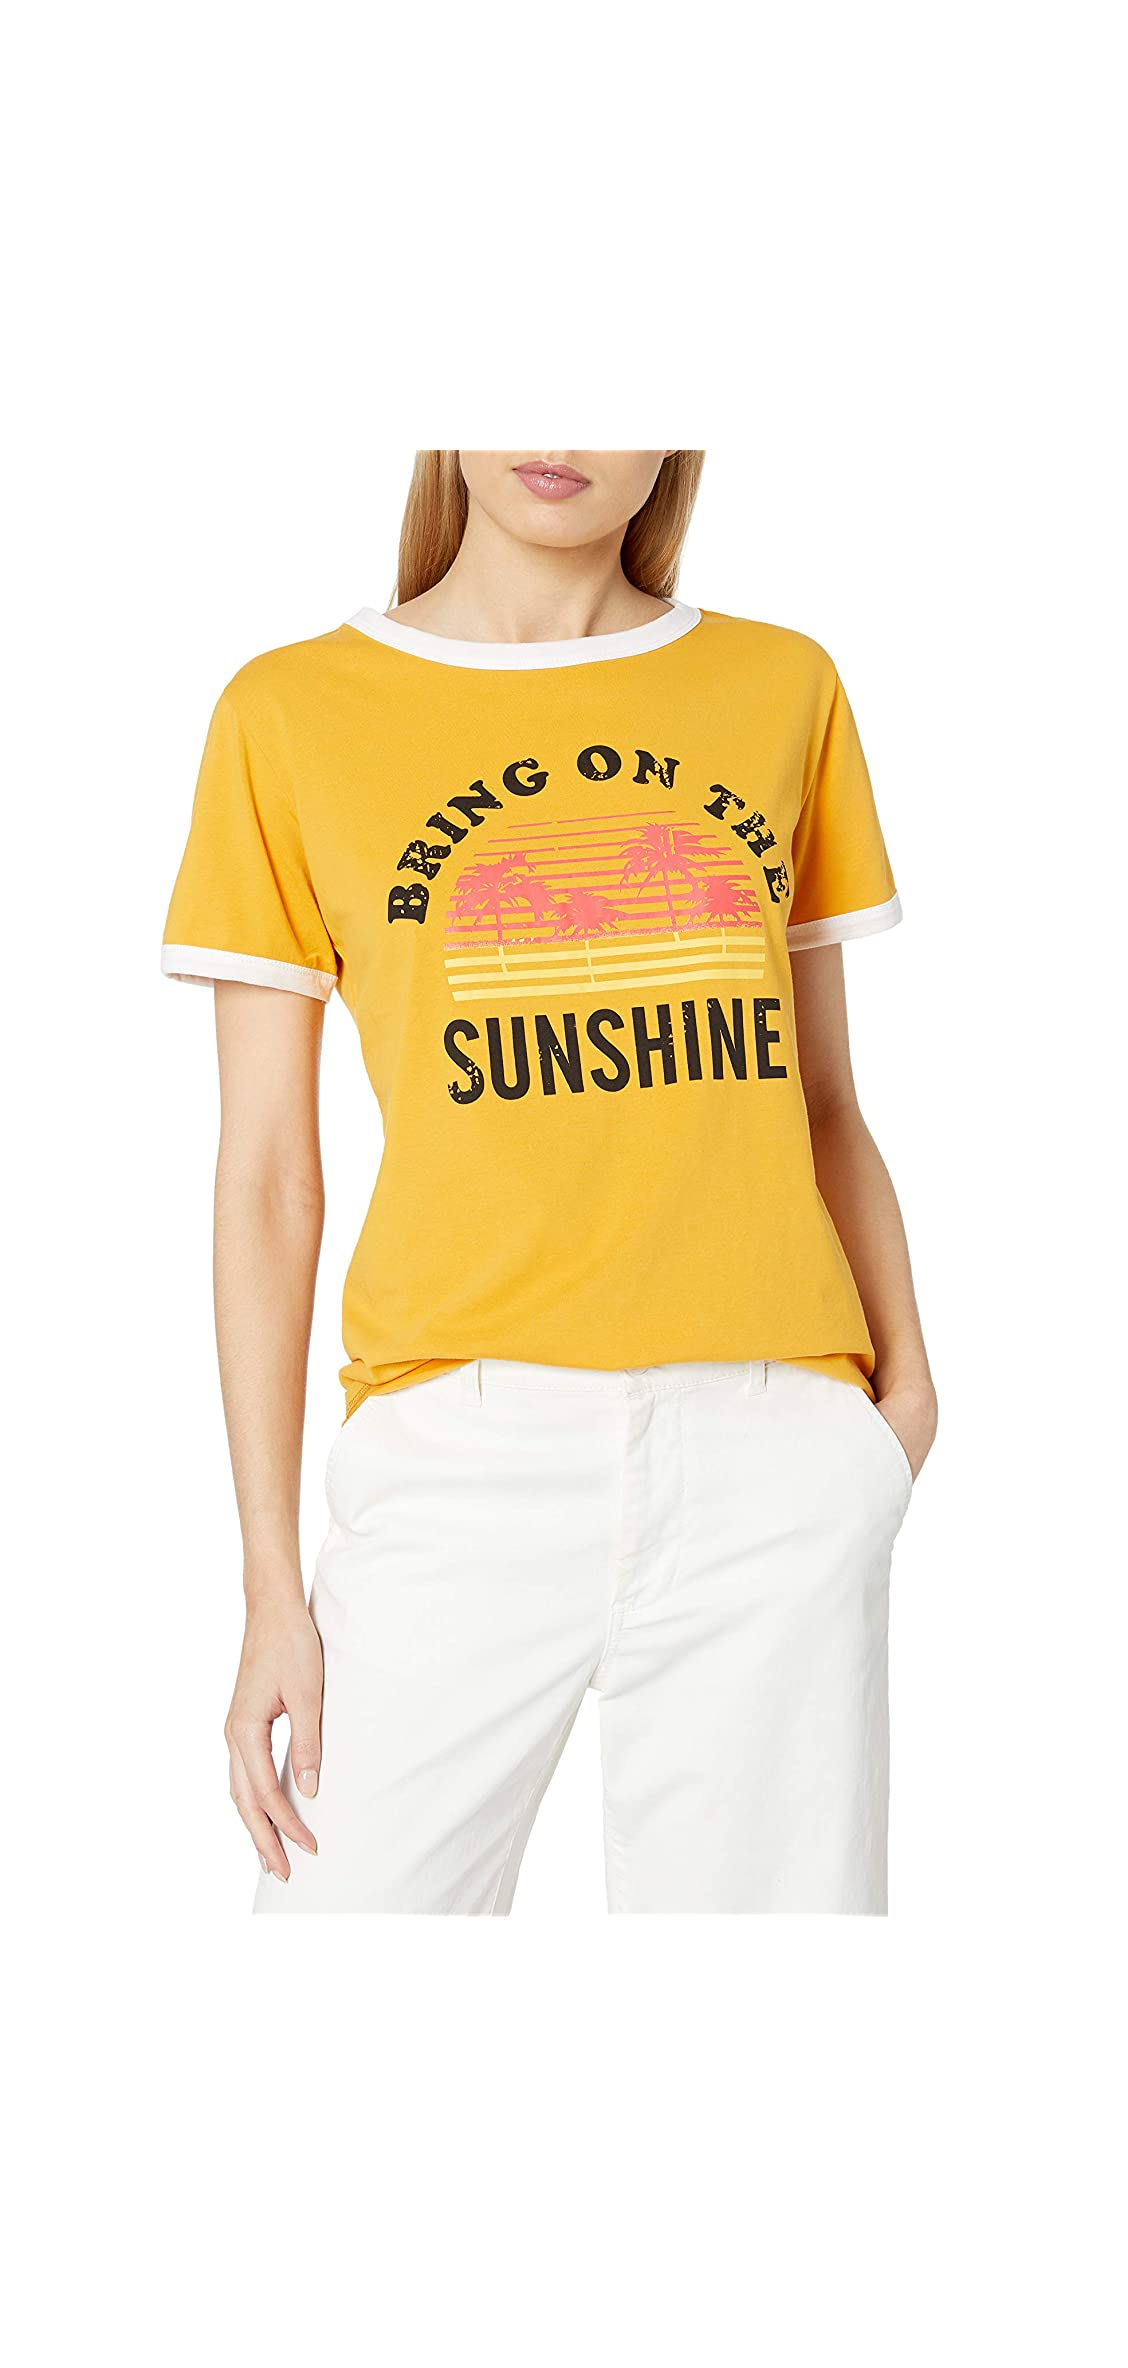 Bring On The Sunshine T-shirt Women's Letter Graphic Casual Tee